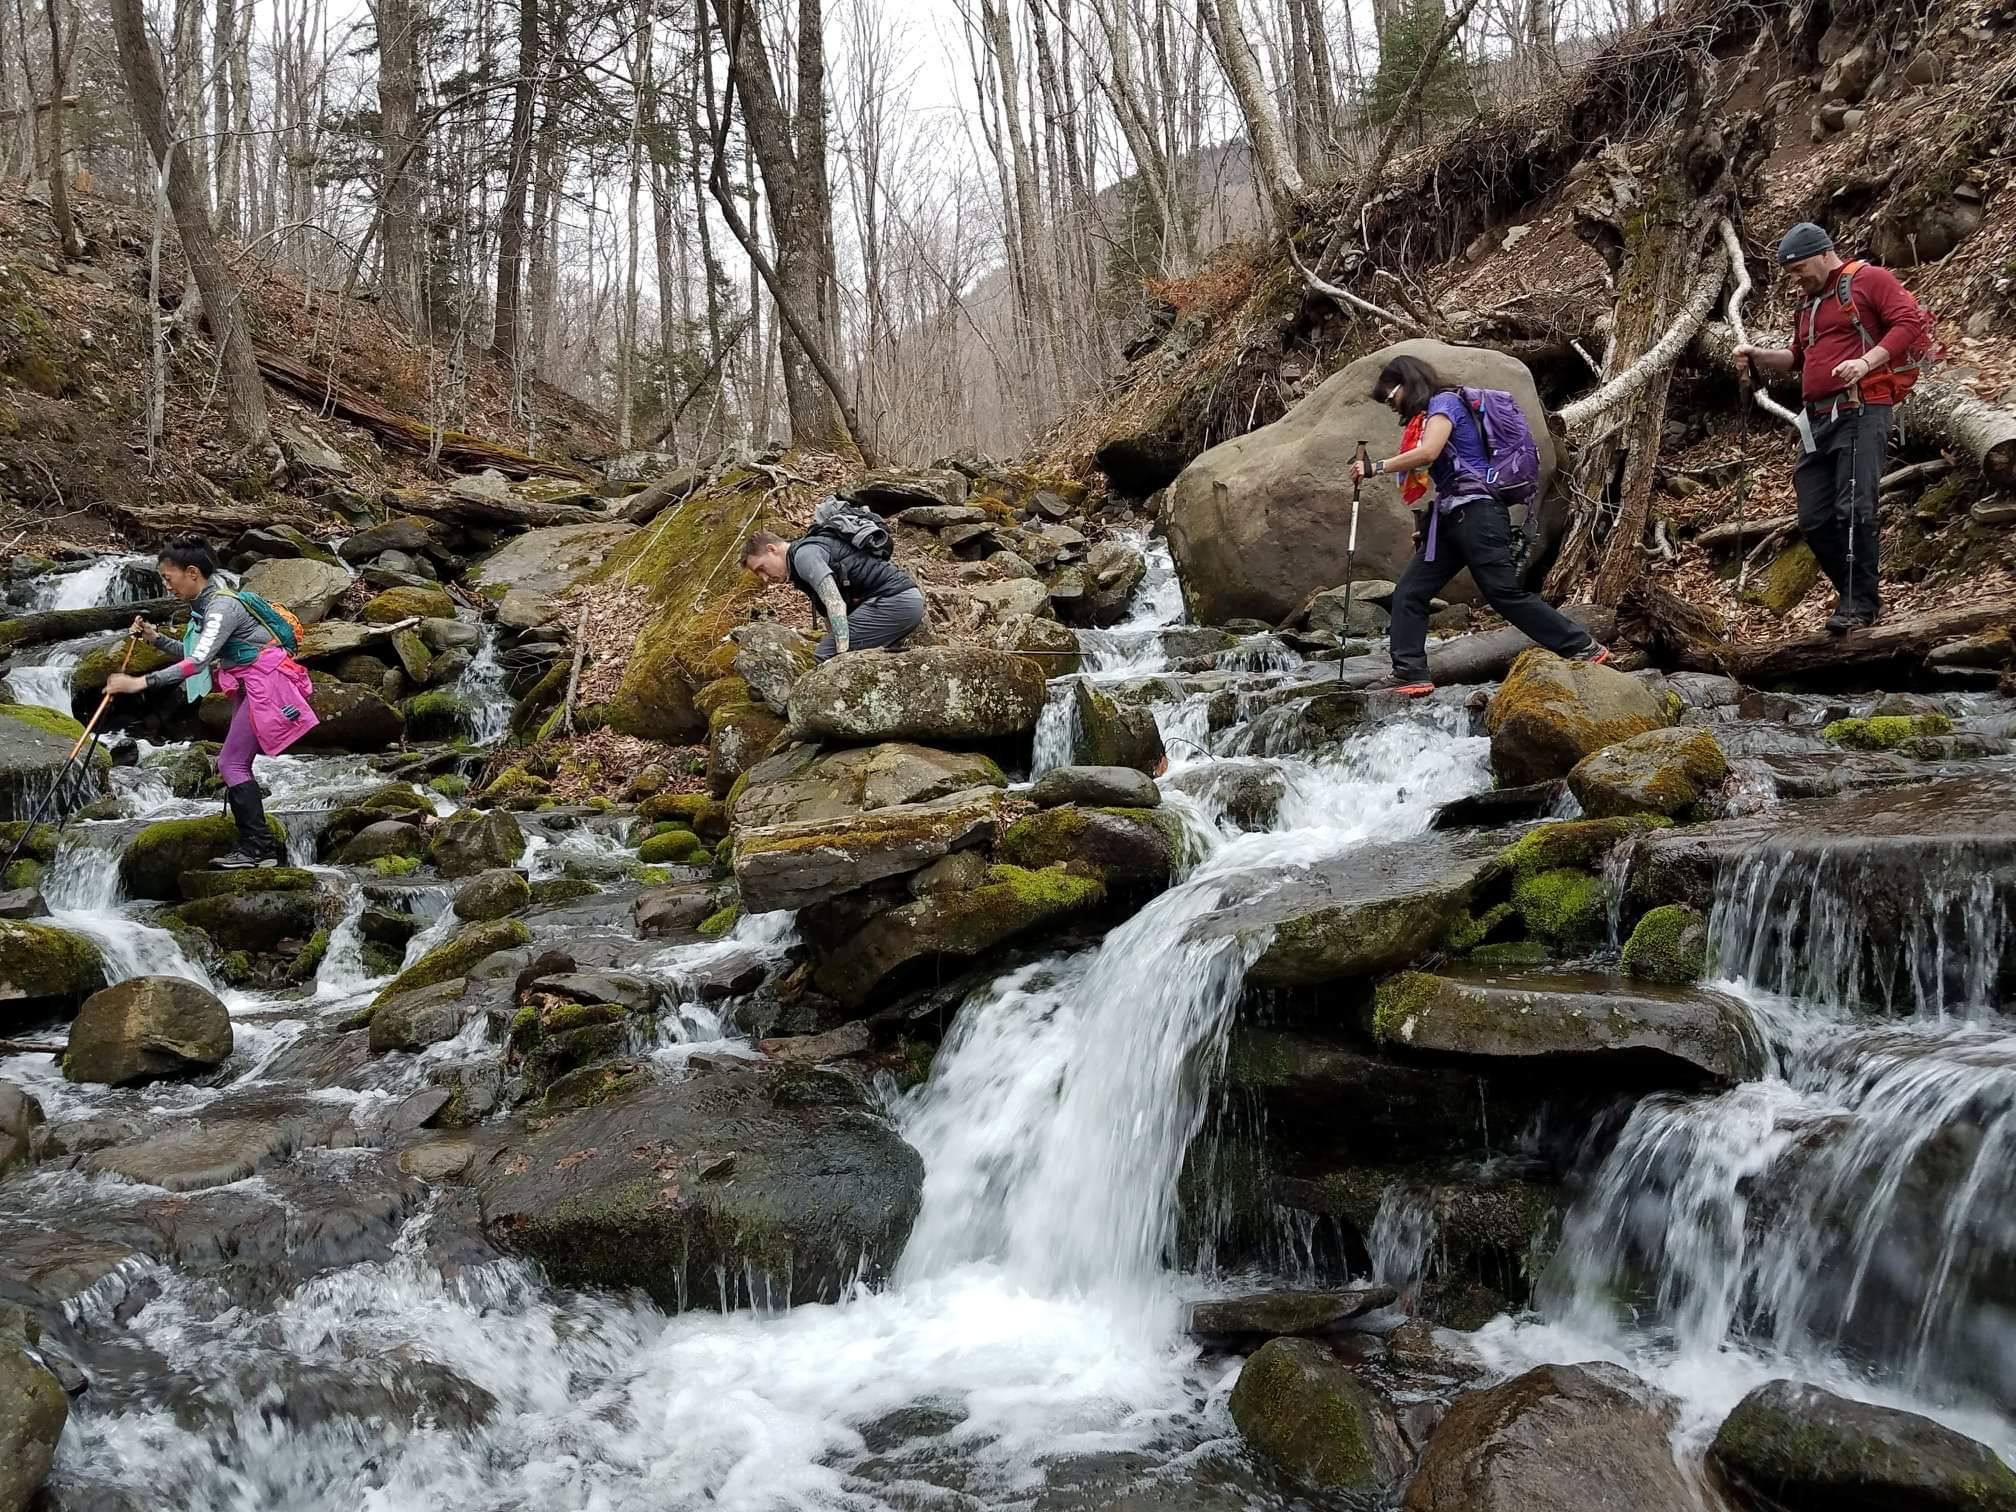 Trekking poles can lend extra stability on slippery rocks when stream crossings are necessary.